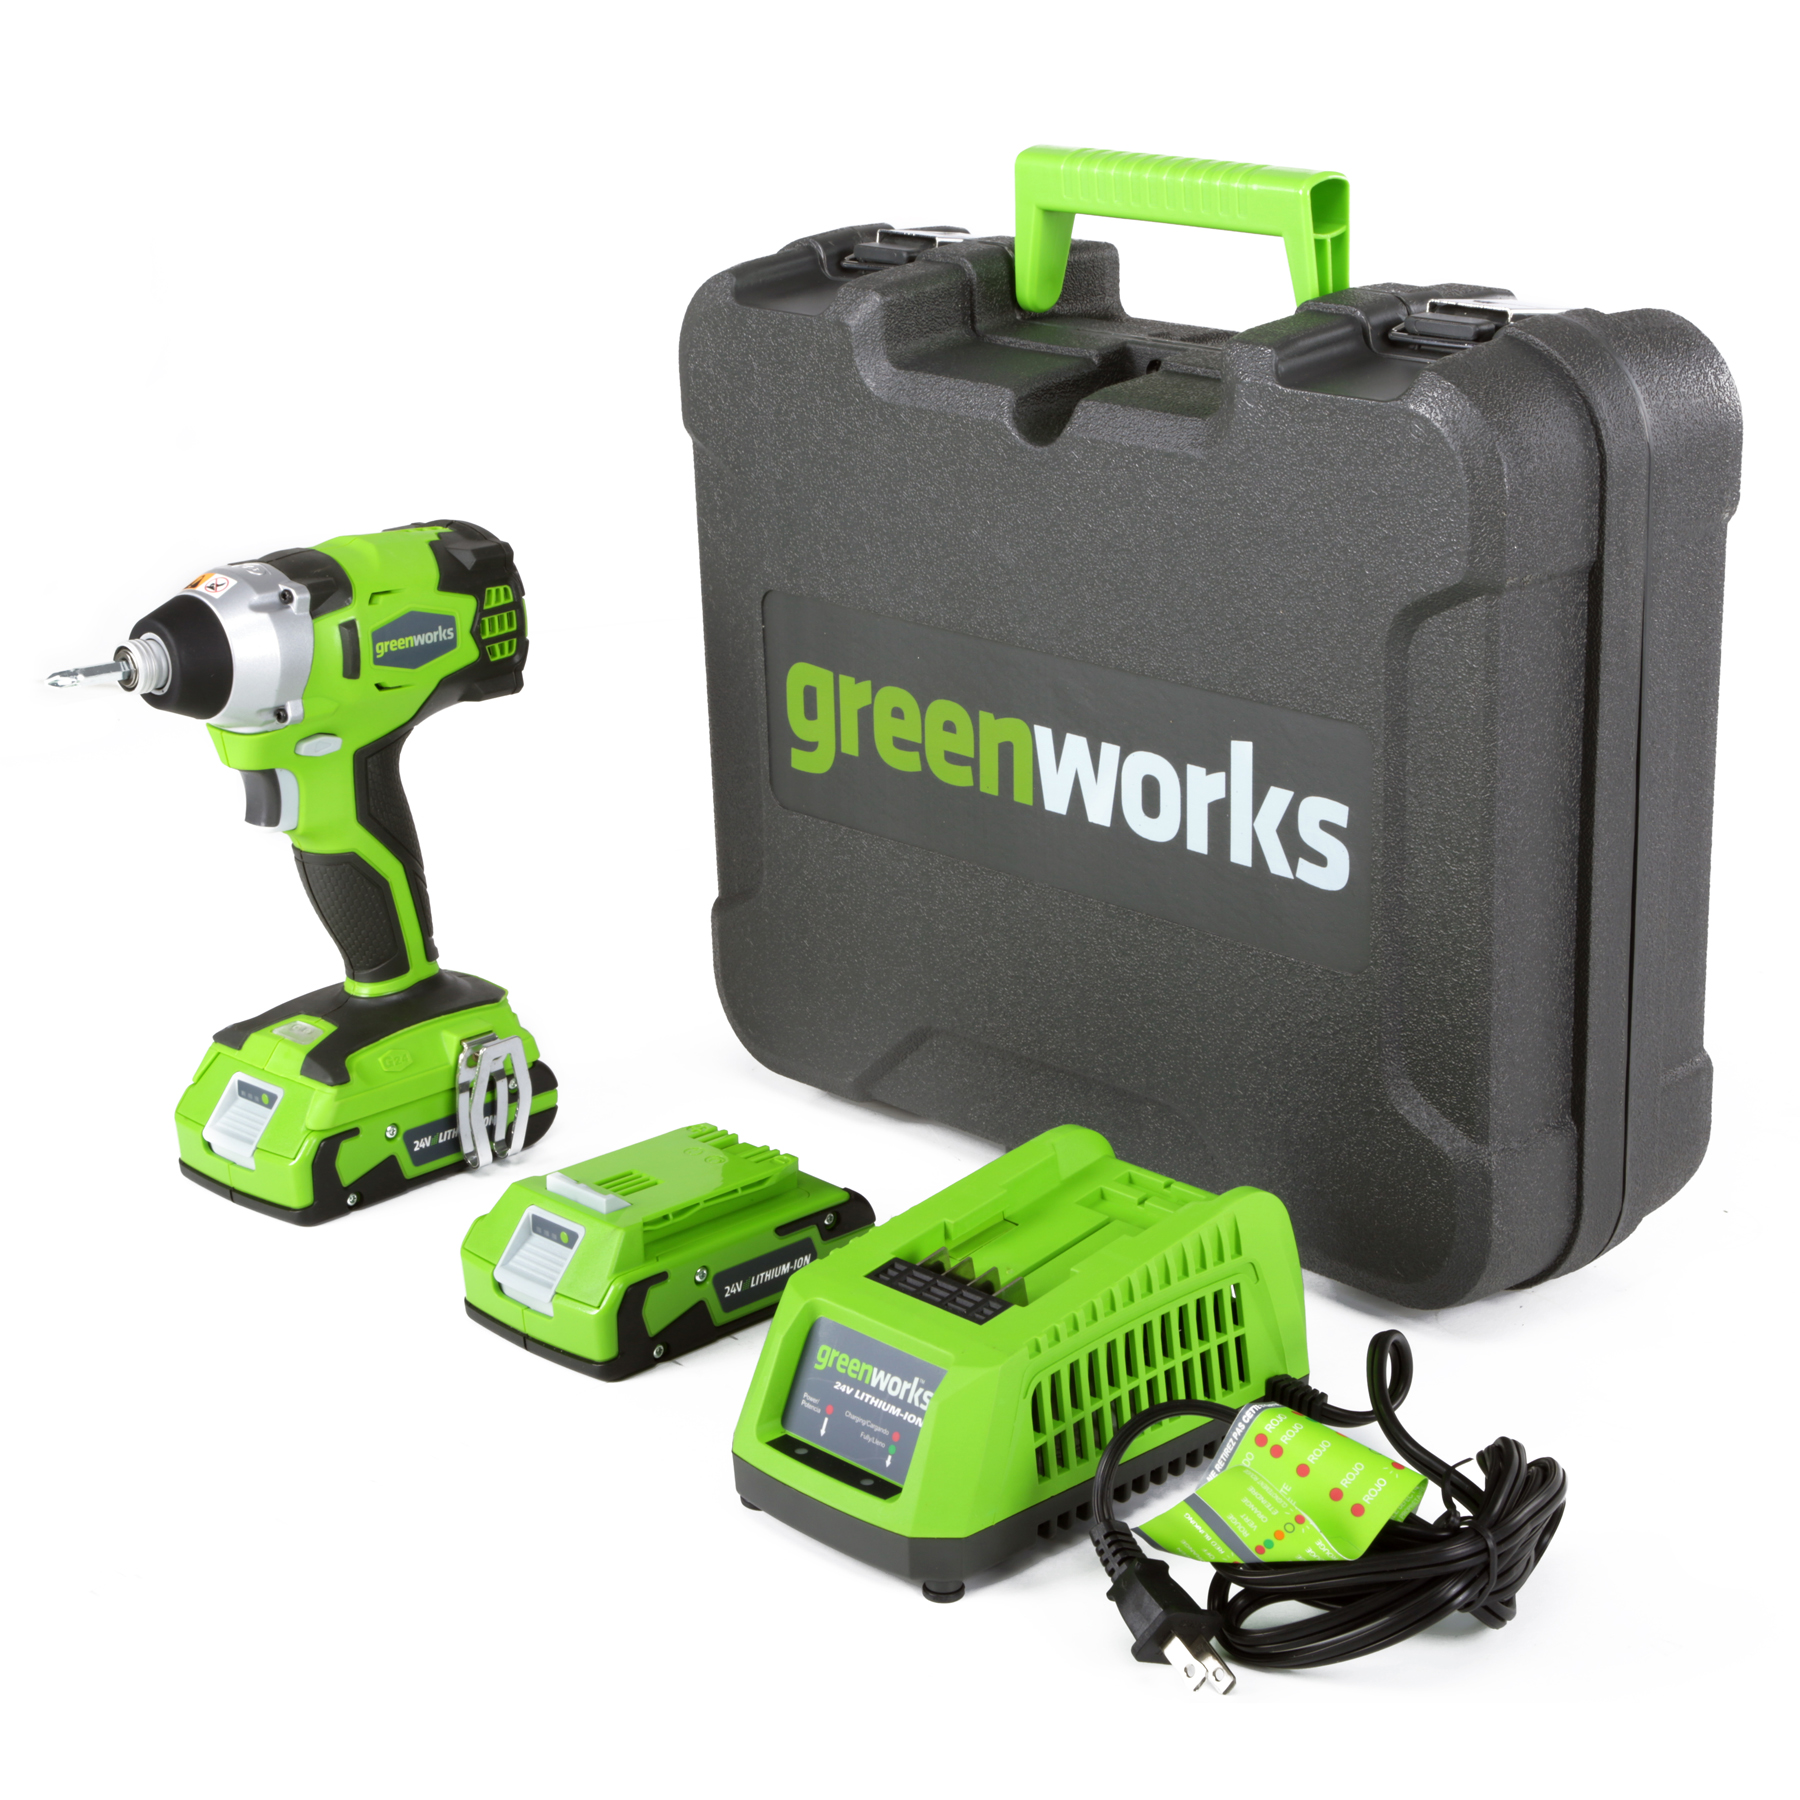 Greenworks 24V Cordless Impact Driver with two 2Ah Batteries & Charger